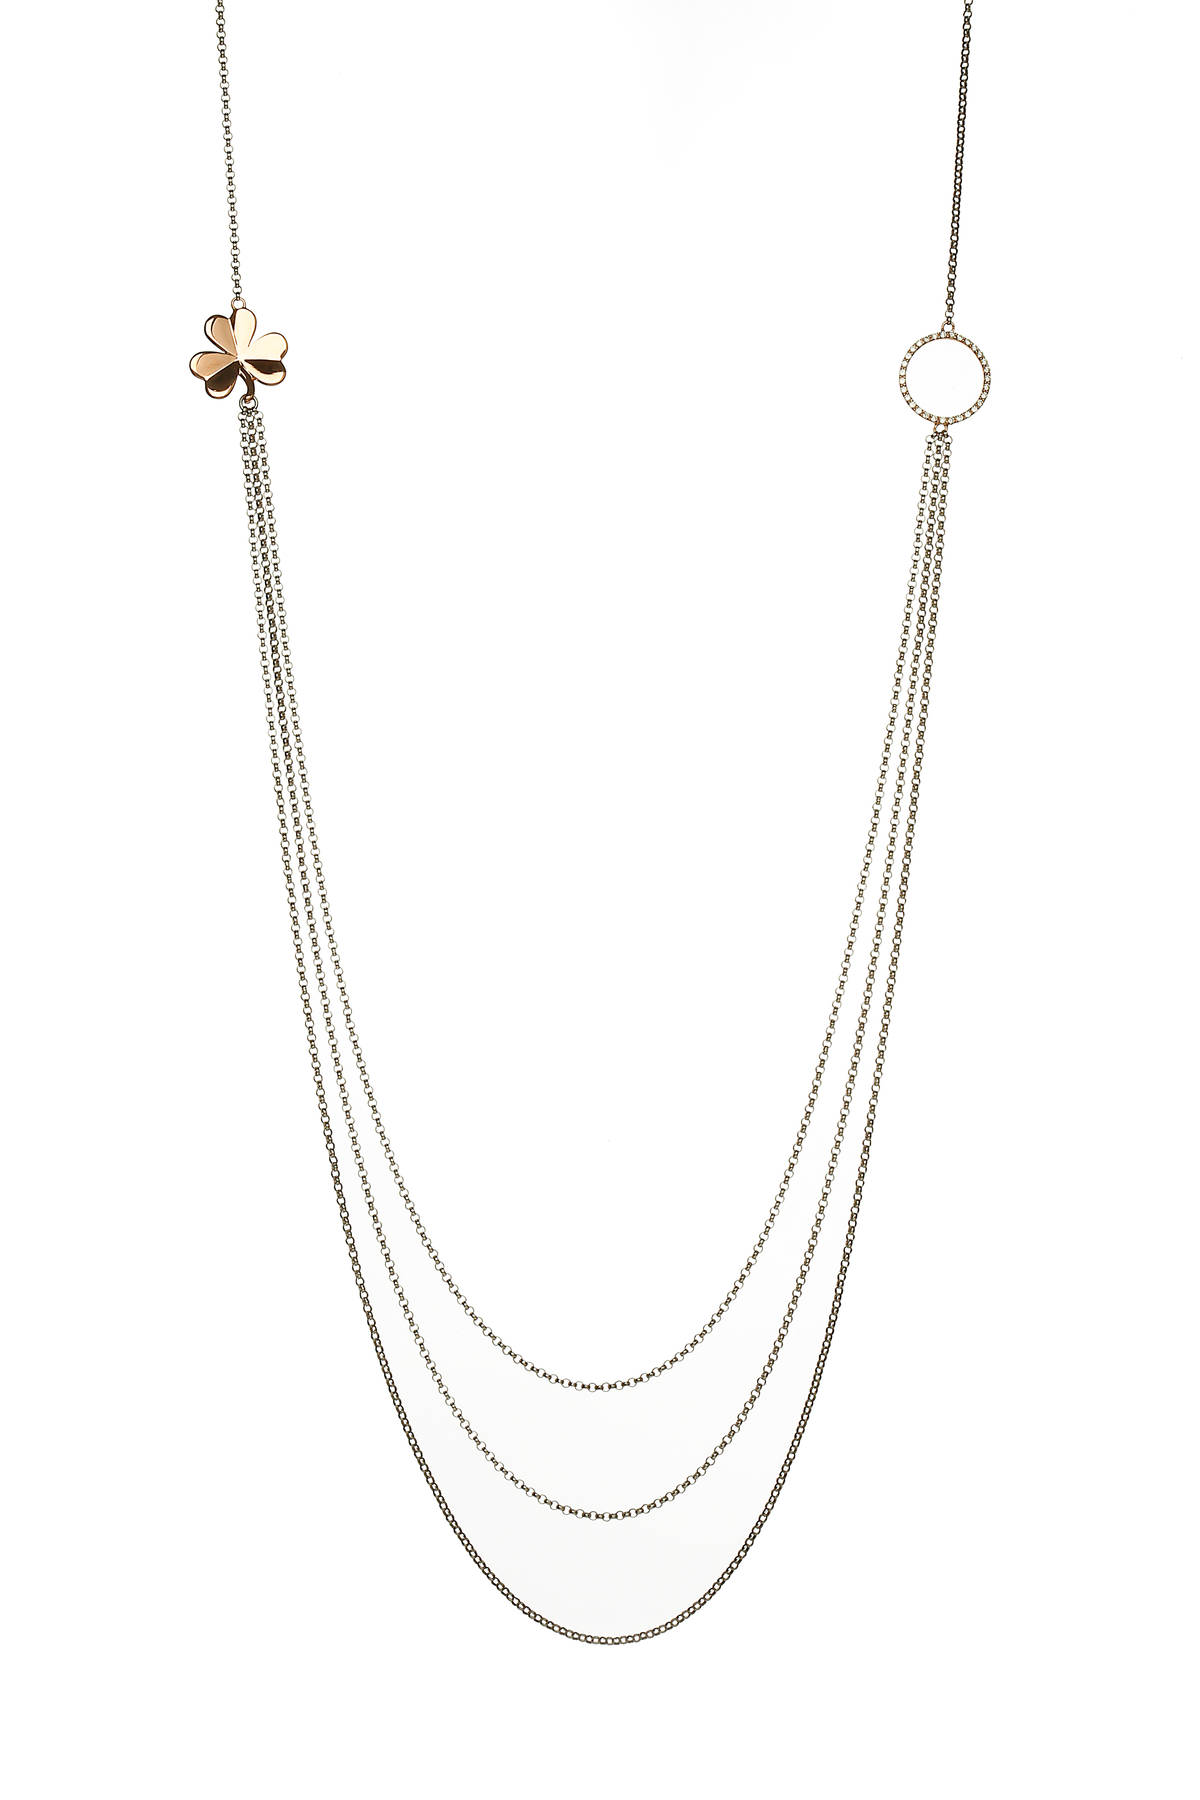 House of Lor silver 3 strand necklet with GP Shamrock rose gold circle made from rare Irish golddwcck/owpck